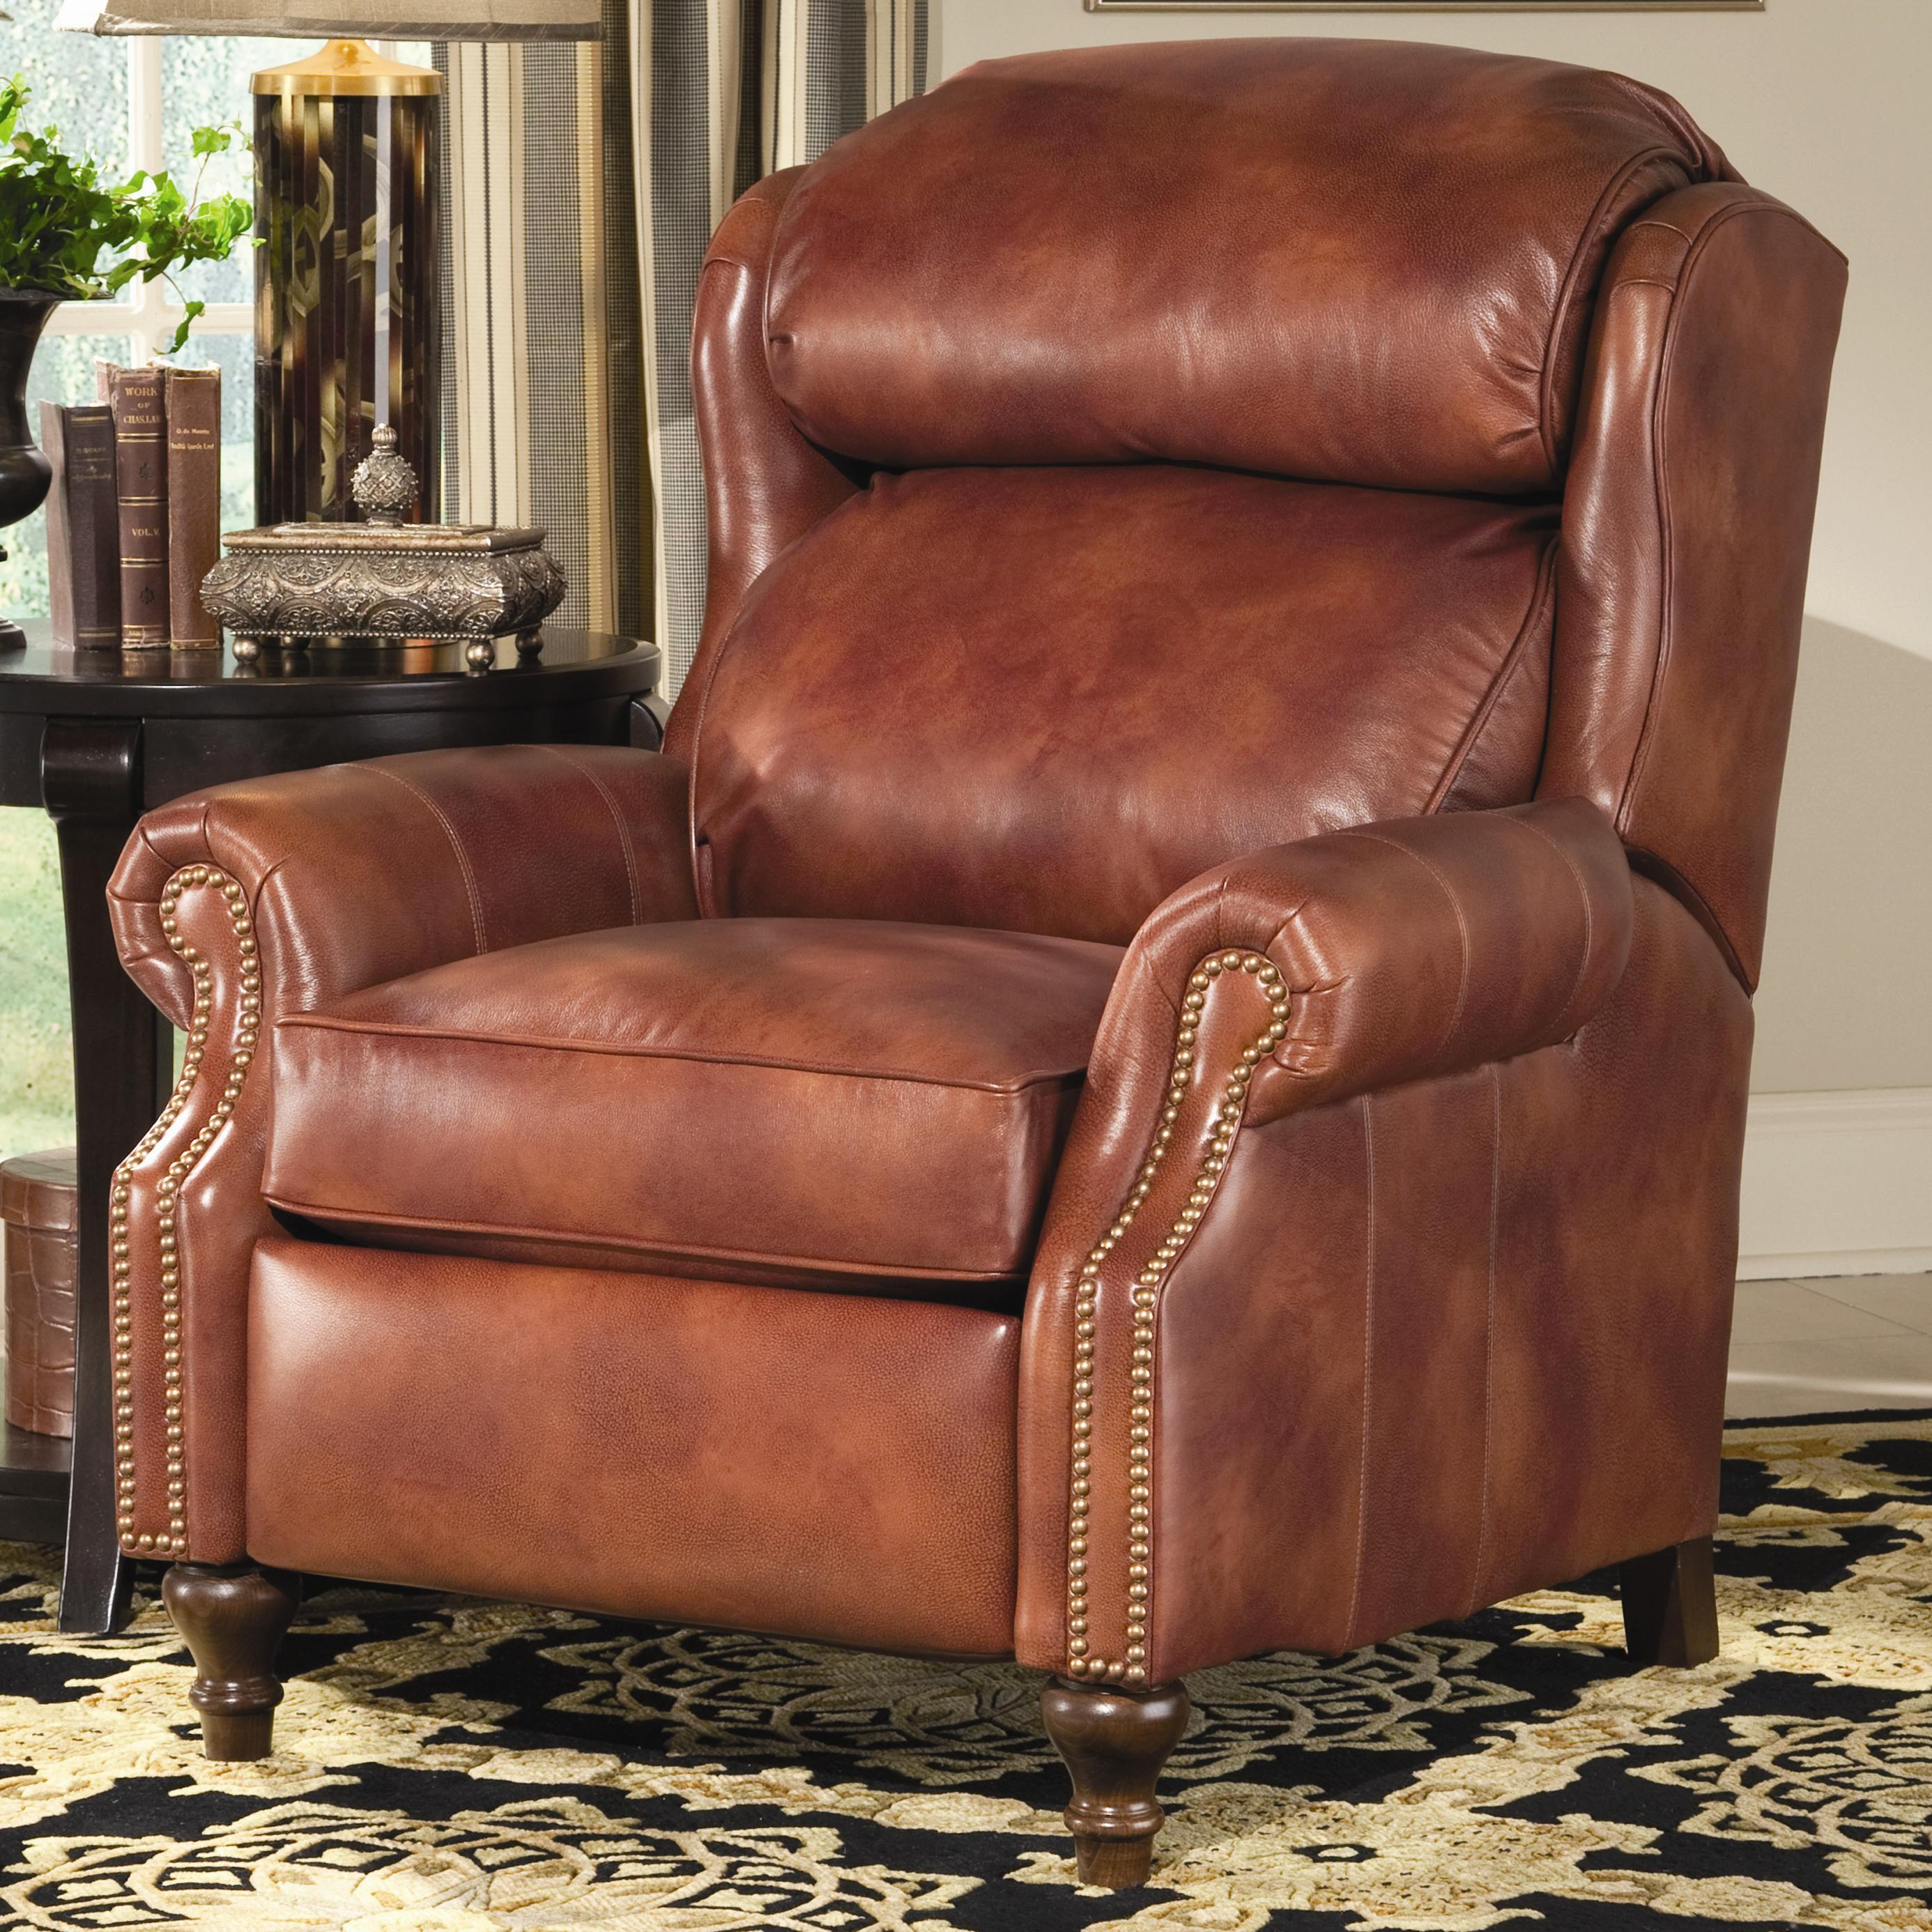 Smith Brothers Recliners Traditional Reclining Chair